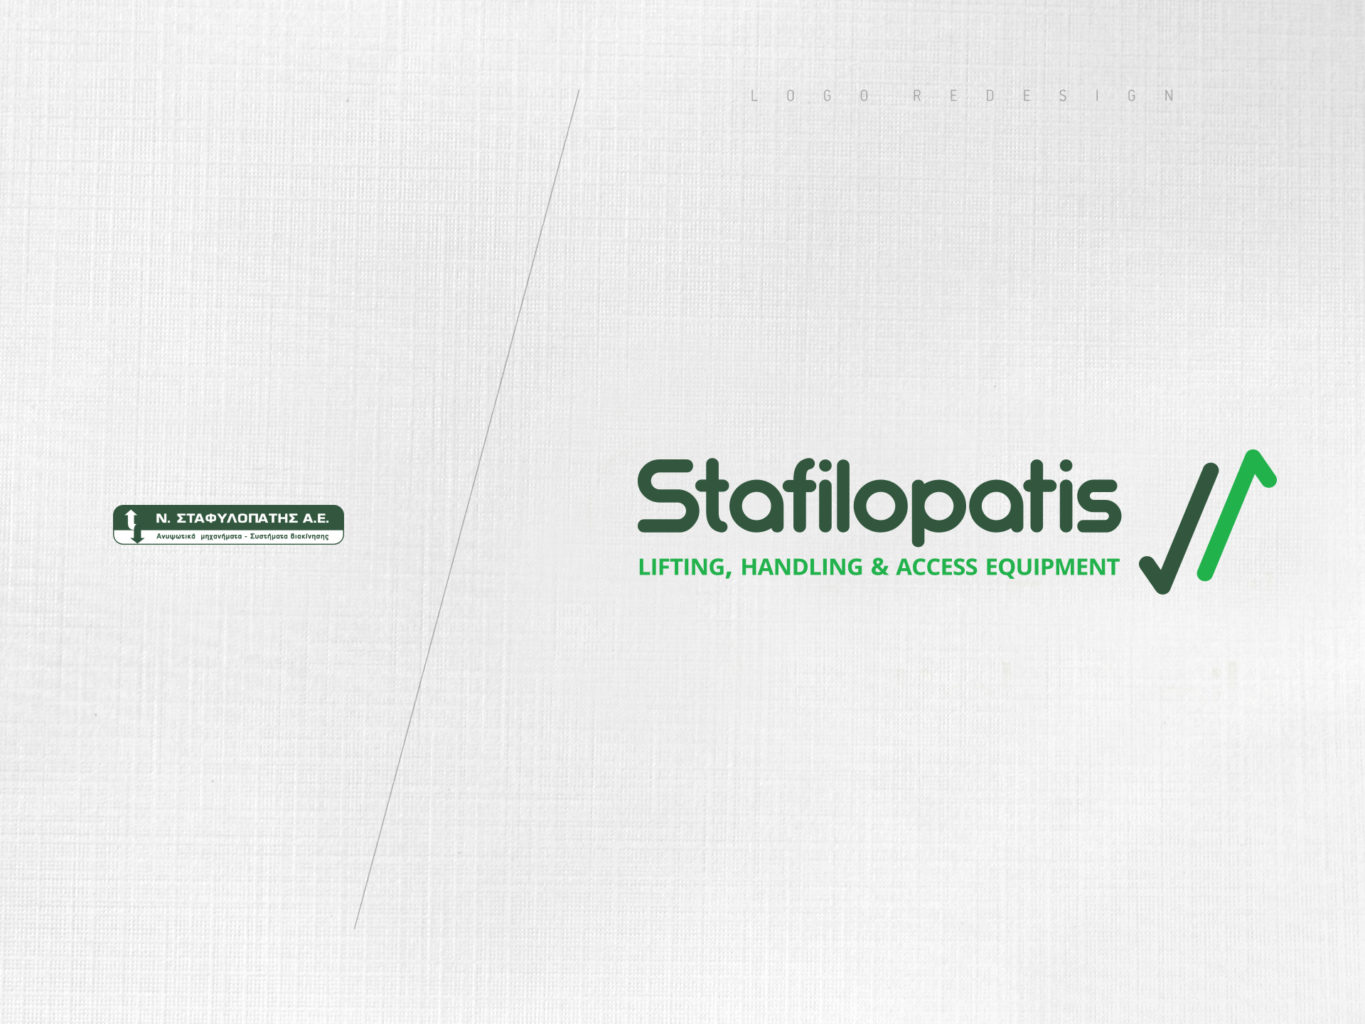 Stafilopatis lifting, handling and access equipment redesign logo